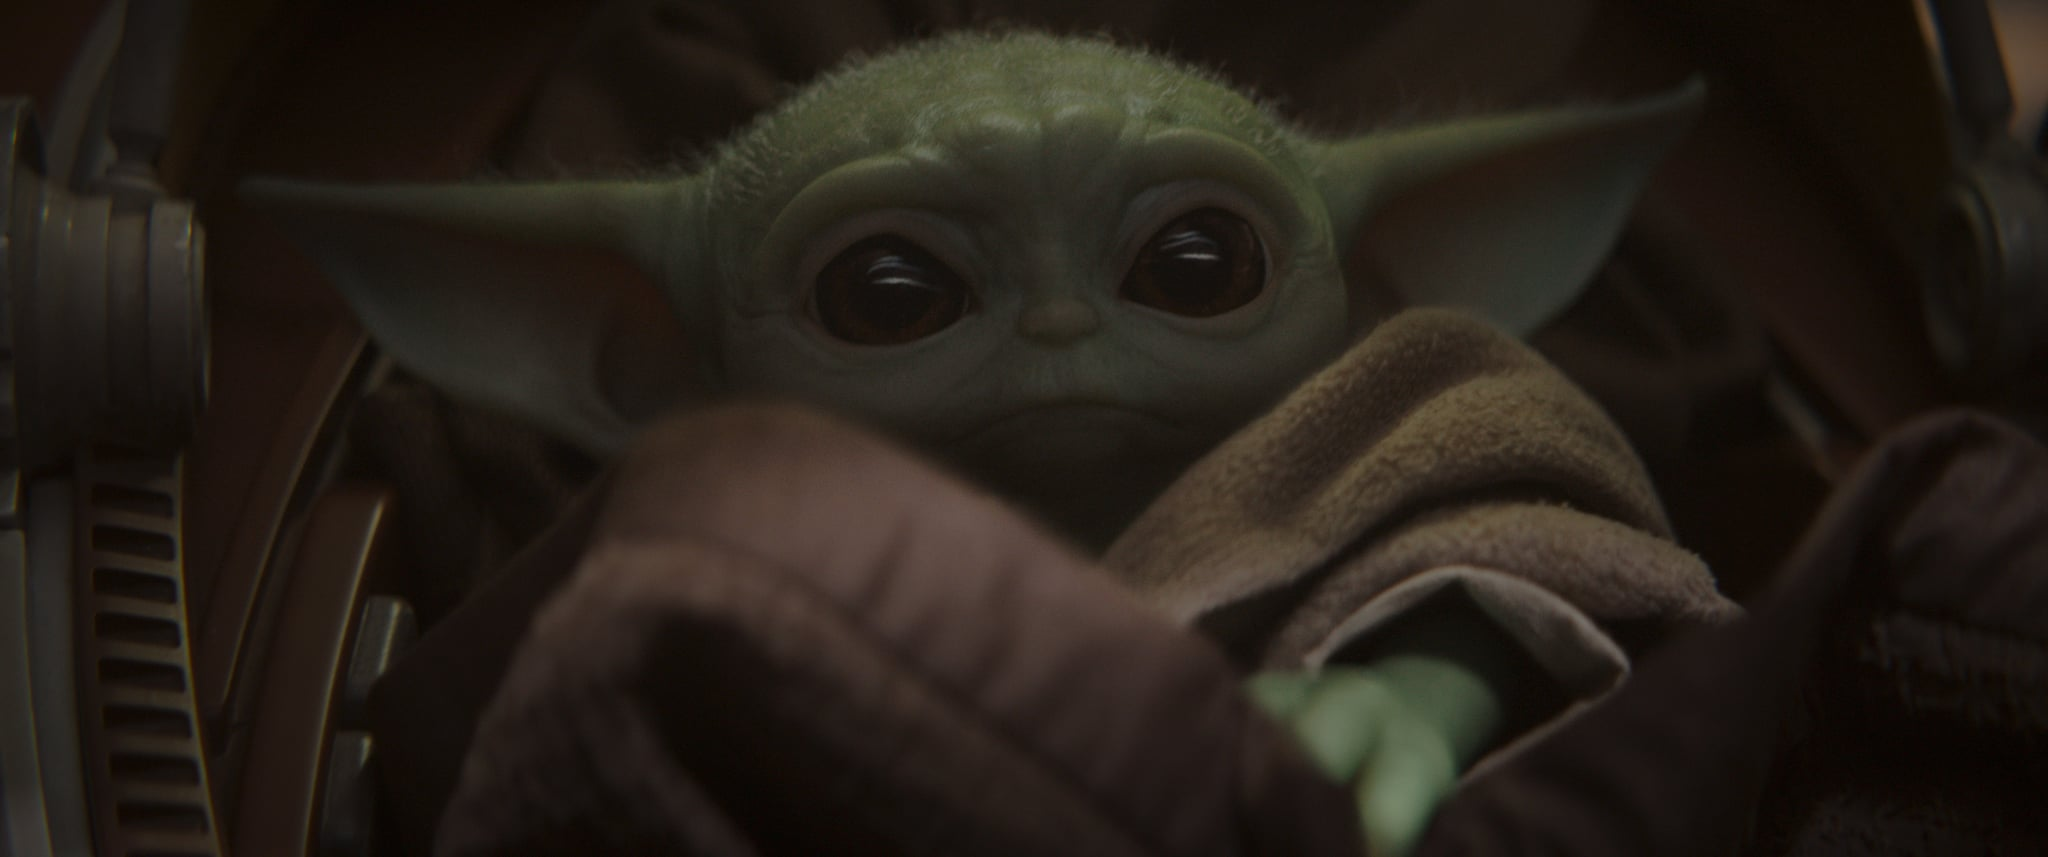 The Mandalorian: Baby Yoda's Birth Year May Be a Clue to Something Really Huge